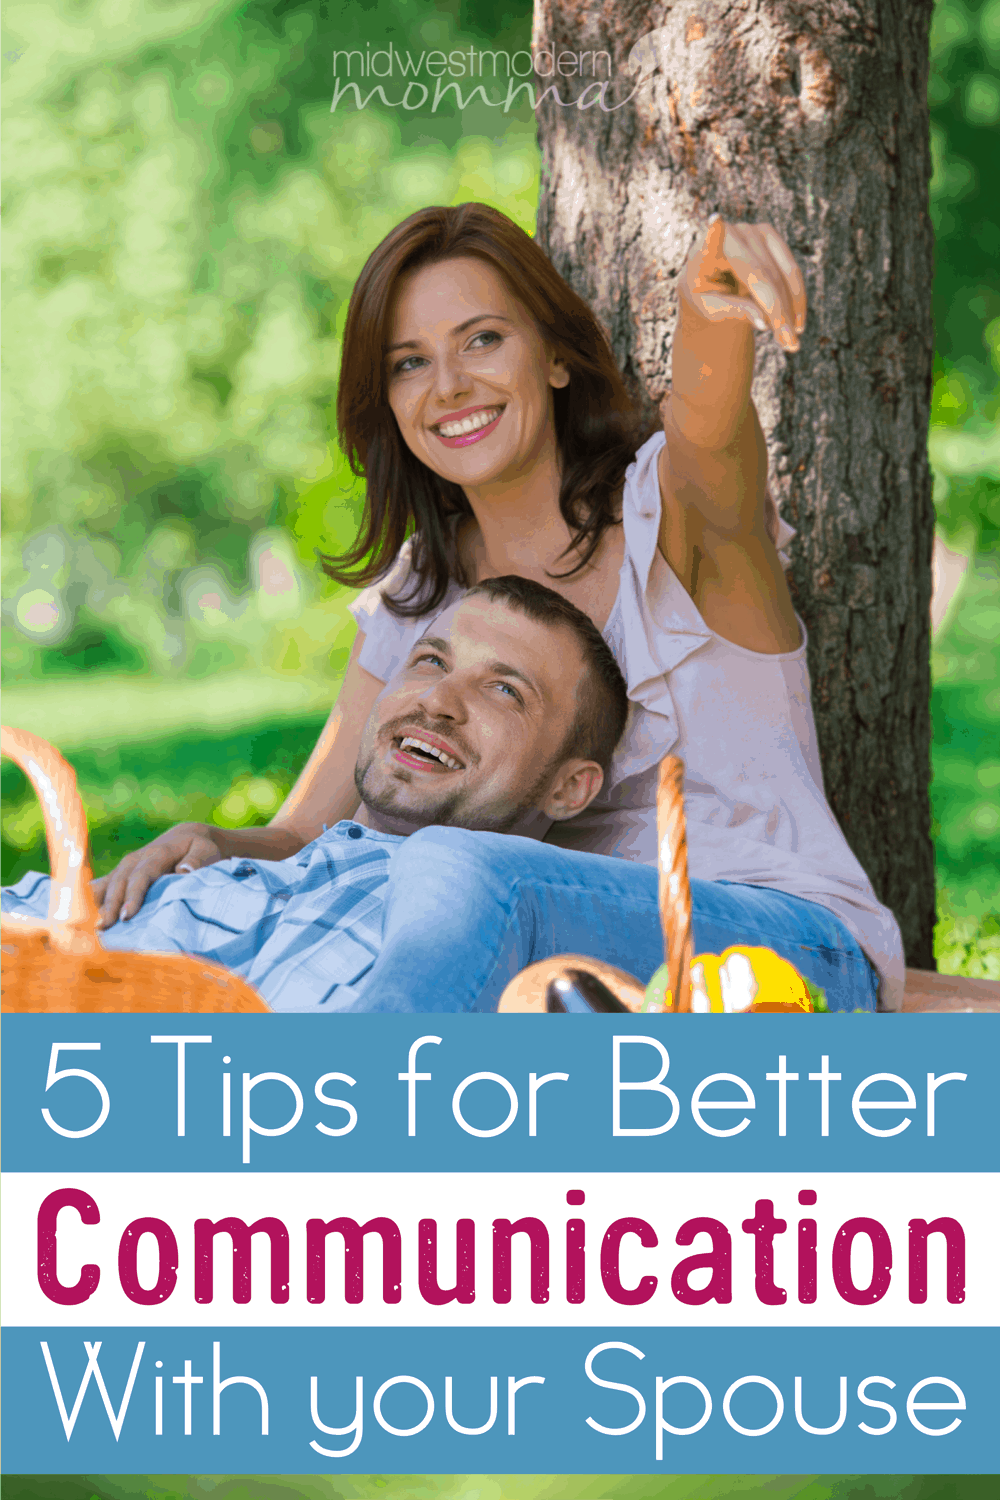 5 Tips for Better Communication with Your Spouse